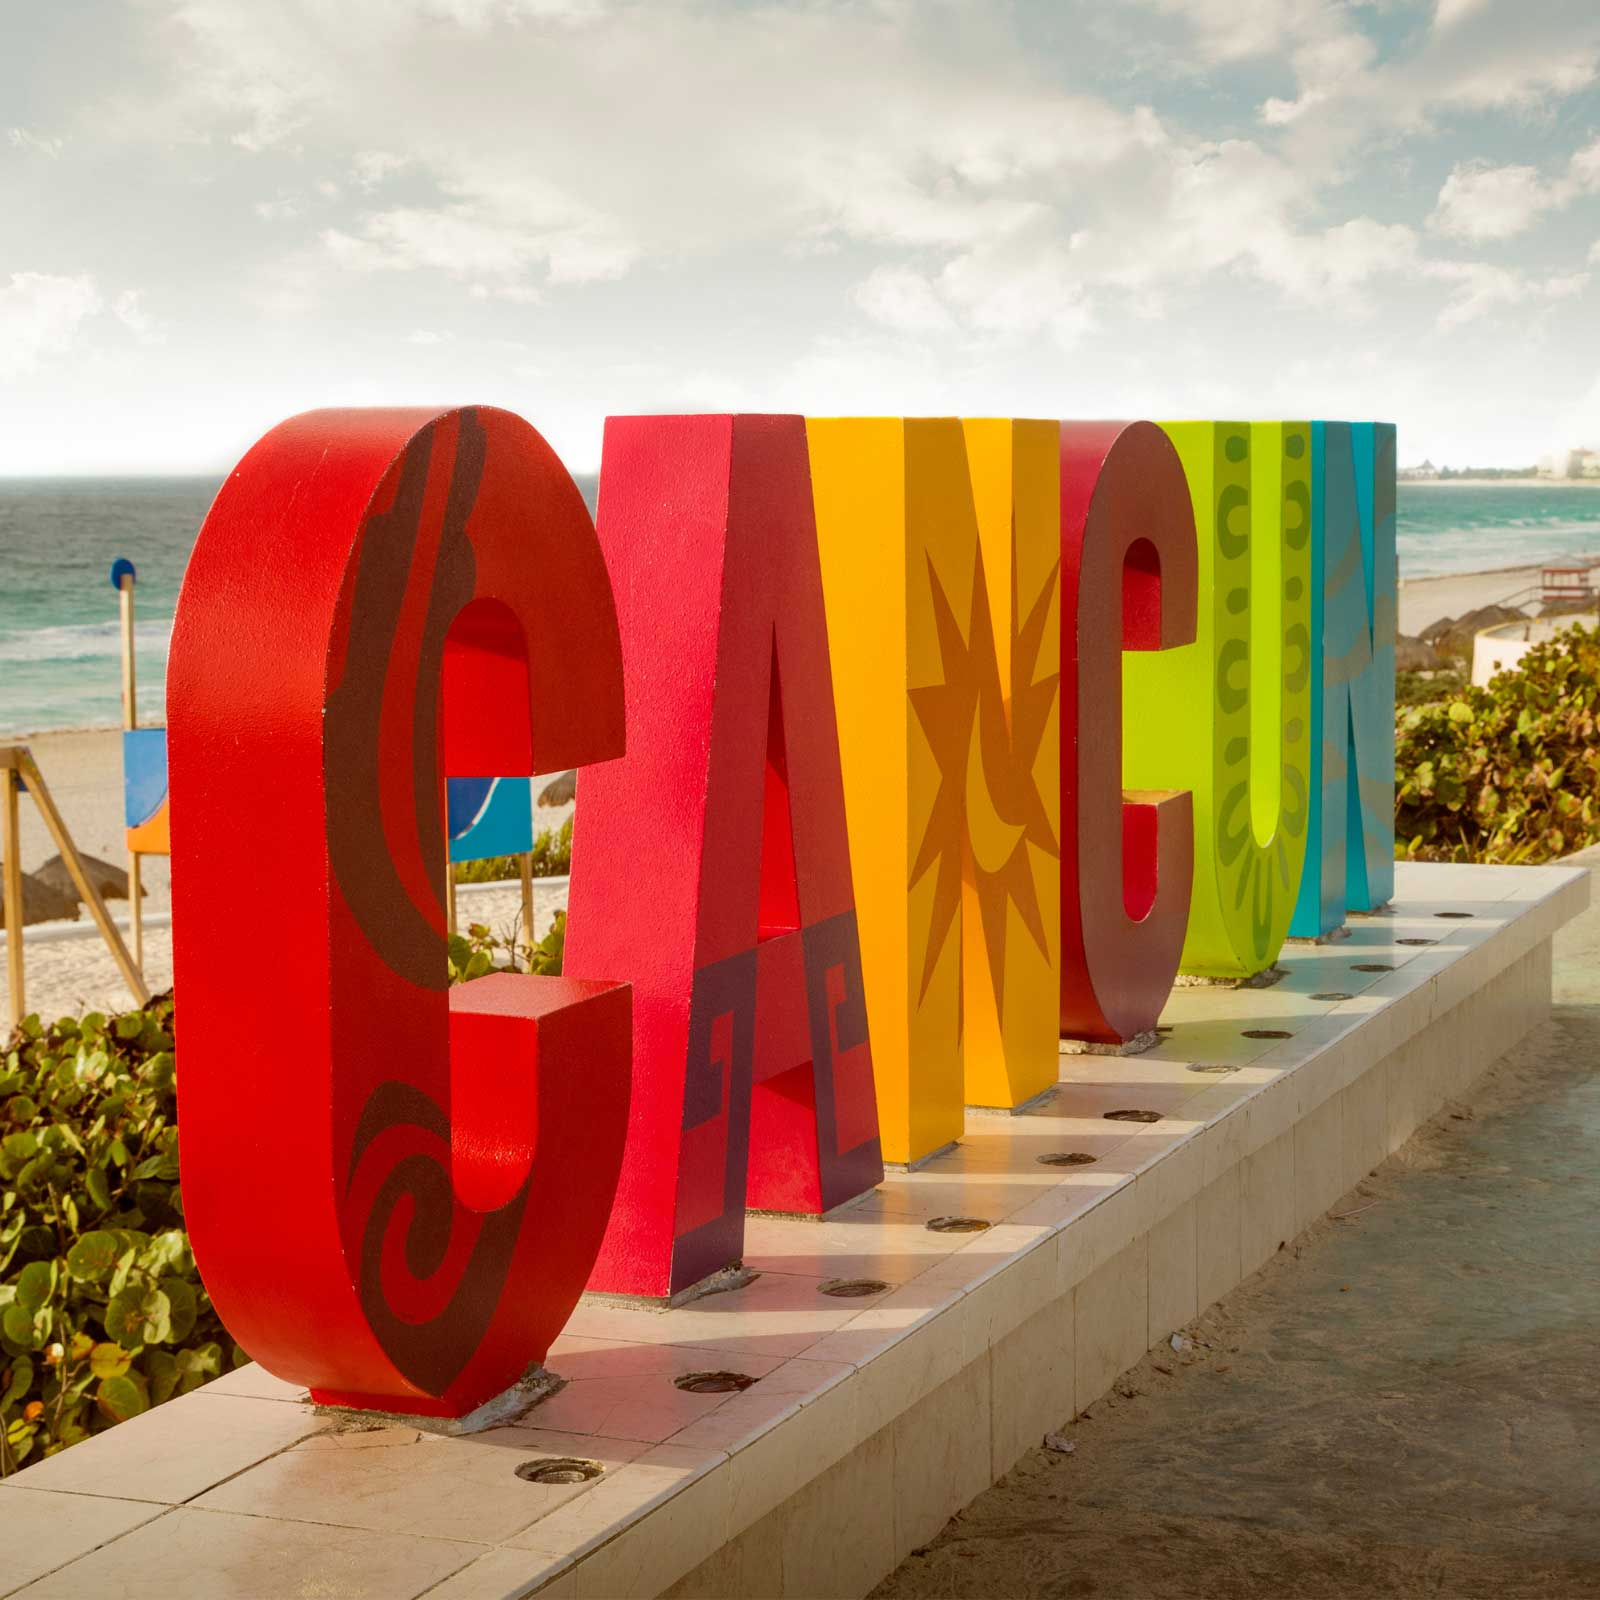 Fun Facts About Cancun - Innovations in Psychotherapy Cancun 2022